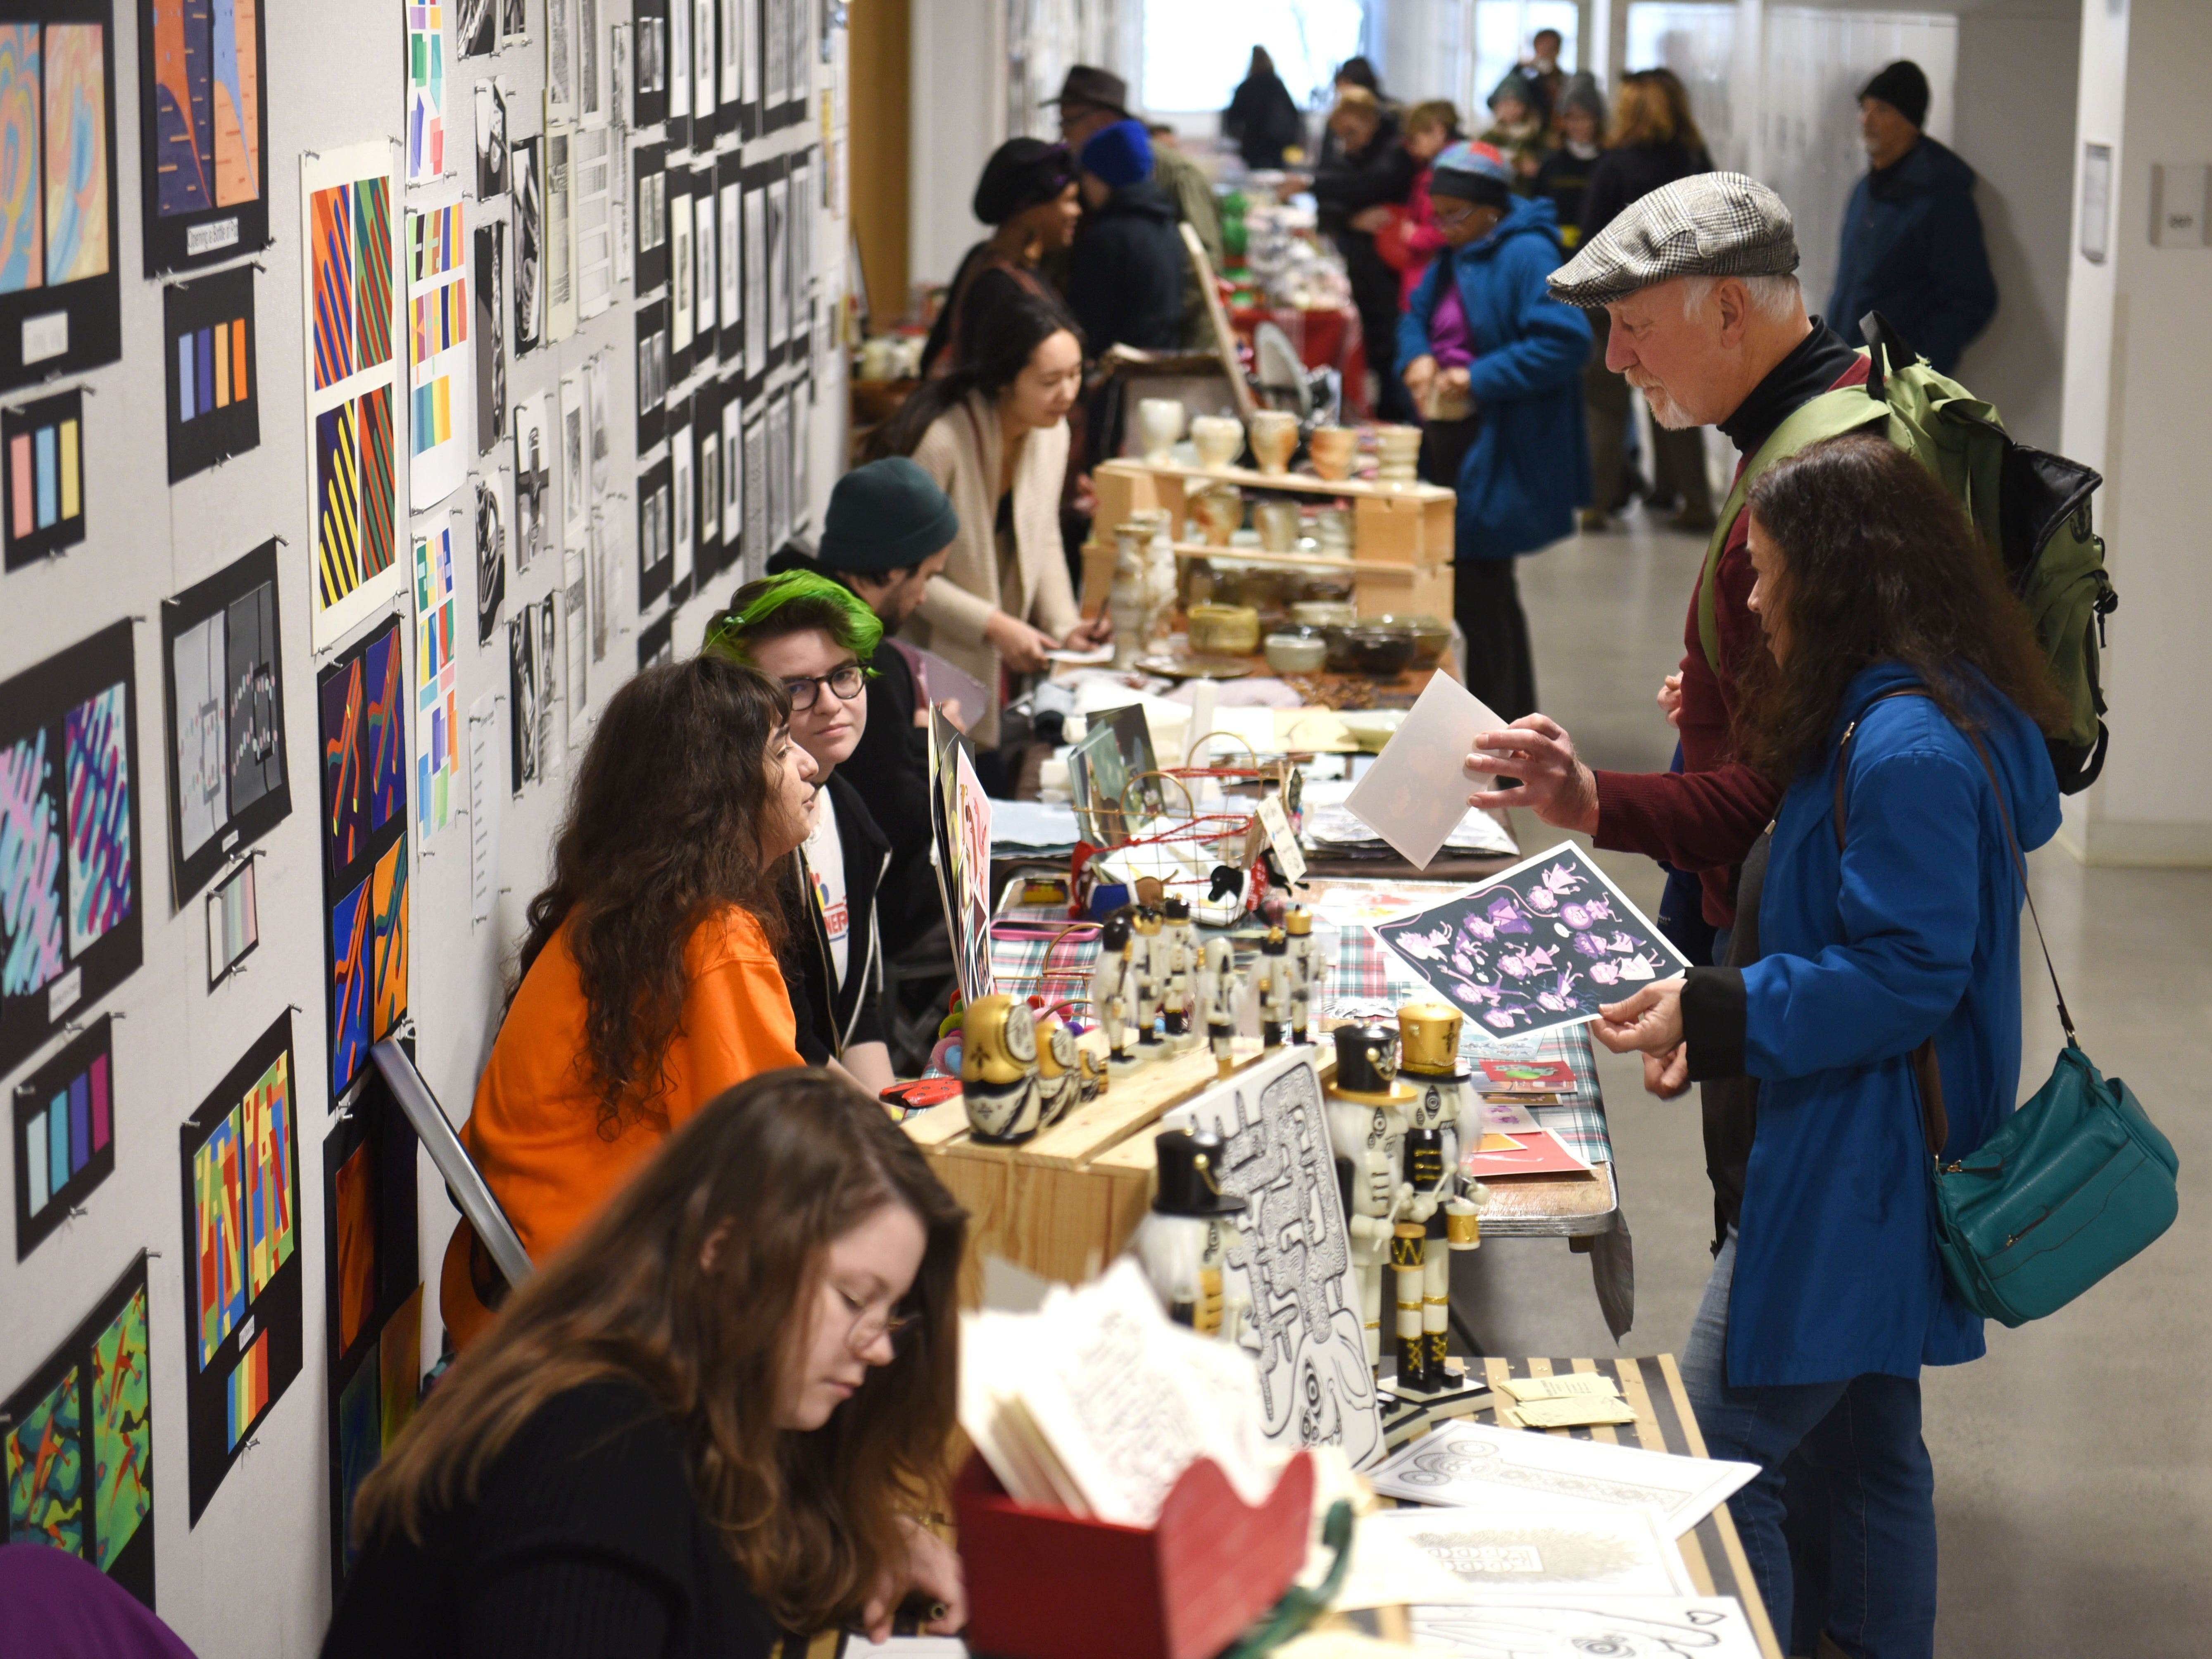 People look at artwork at the Annual Student Alumni Art Sale at the College of Creative Studies during Noel Night in Detroit on Saturday, December 1, 2018.